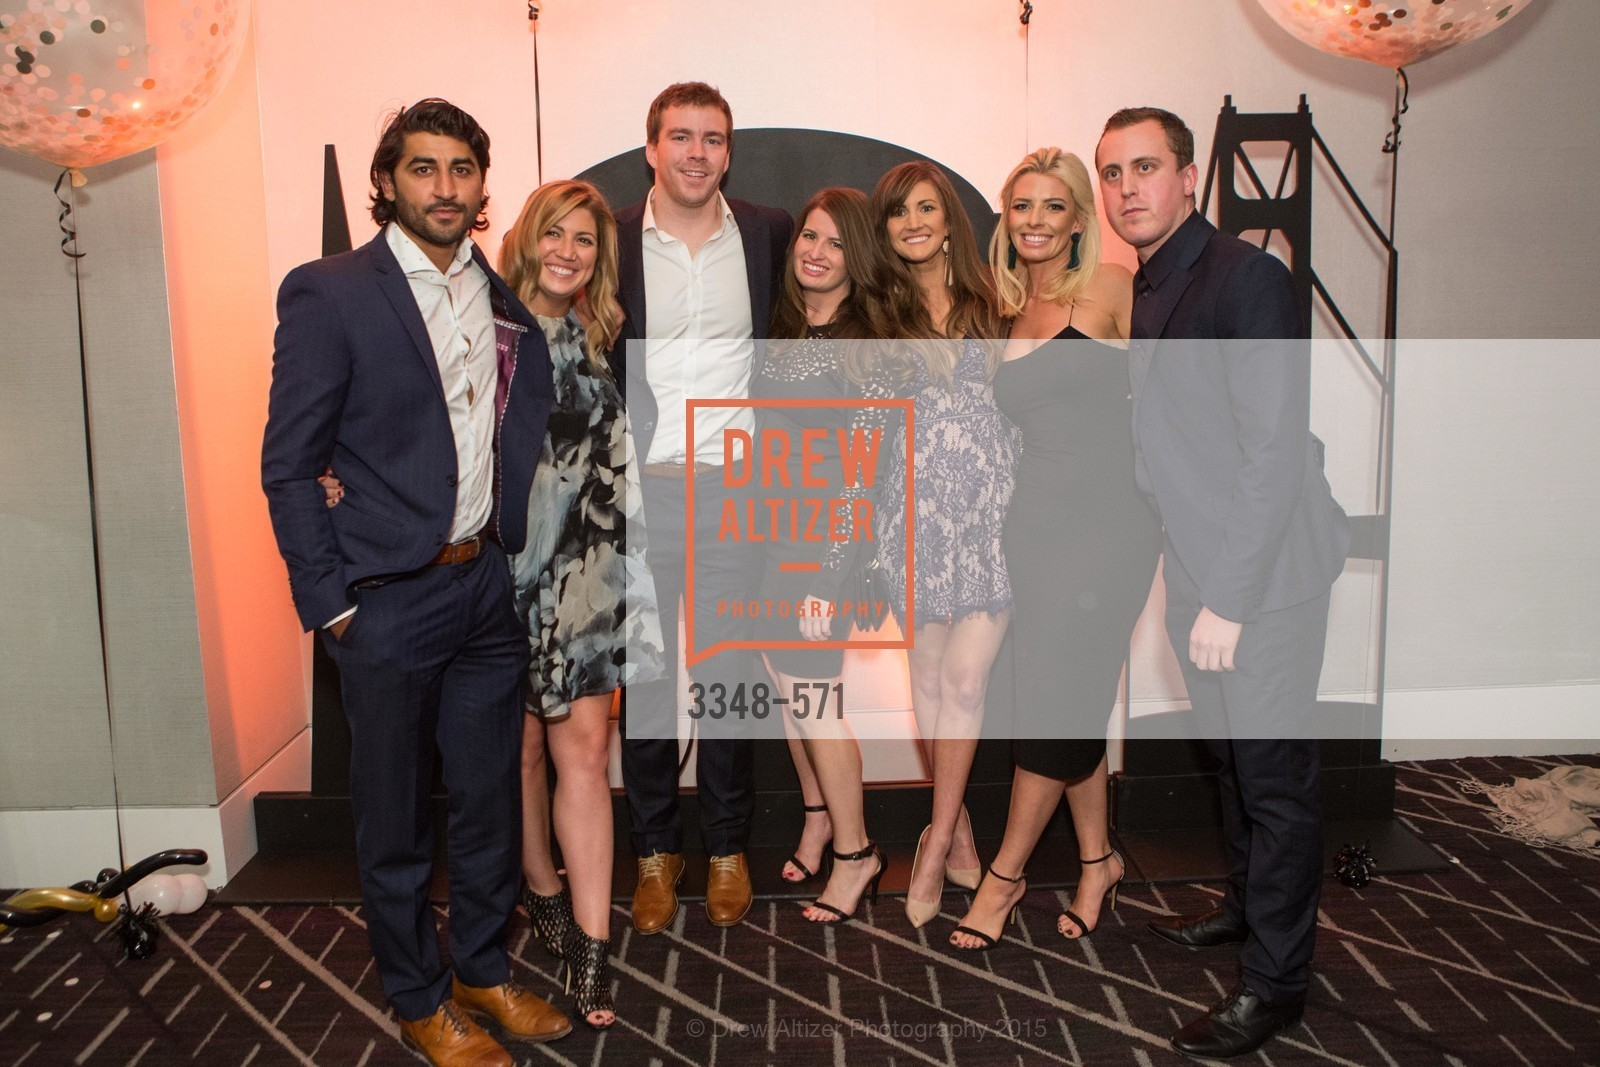 Photobooth, The 10th Annual San Francisco Social, November 21st, 2015, Photo,Drew Altizer, Drew Altizer Photography, full-service agency, private events, San Francisco photographer, photographer california